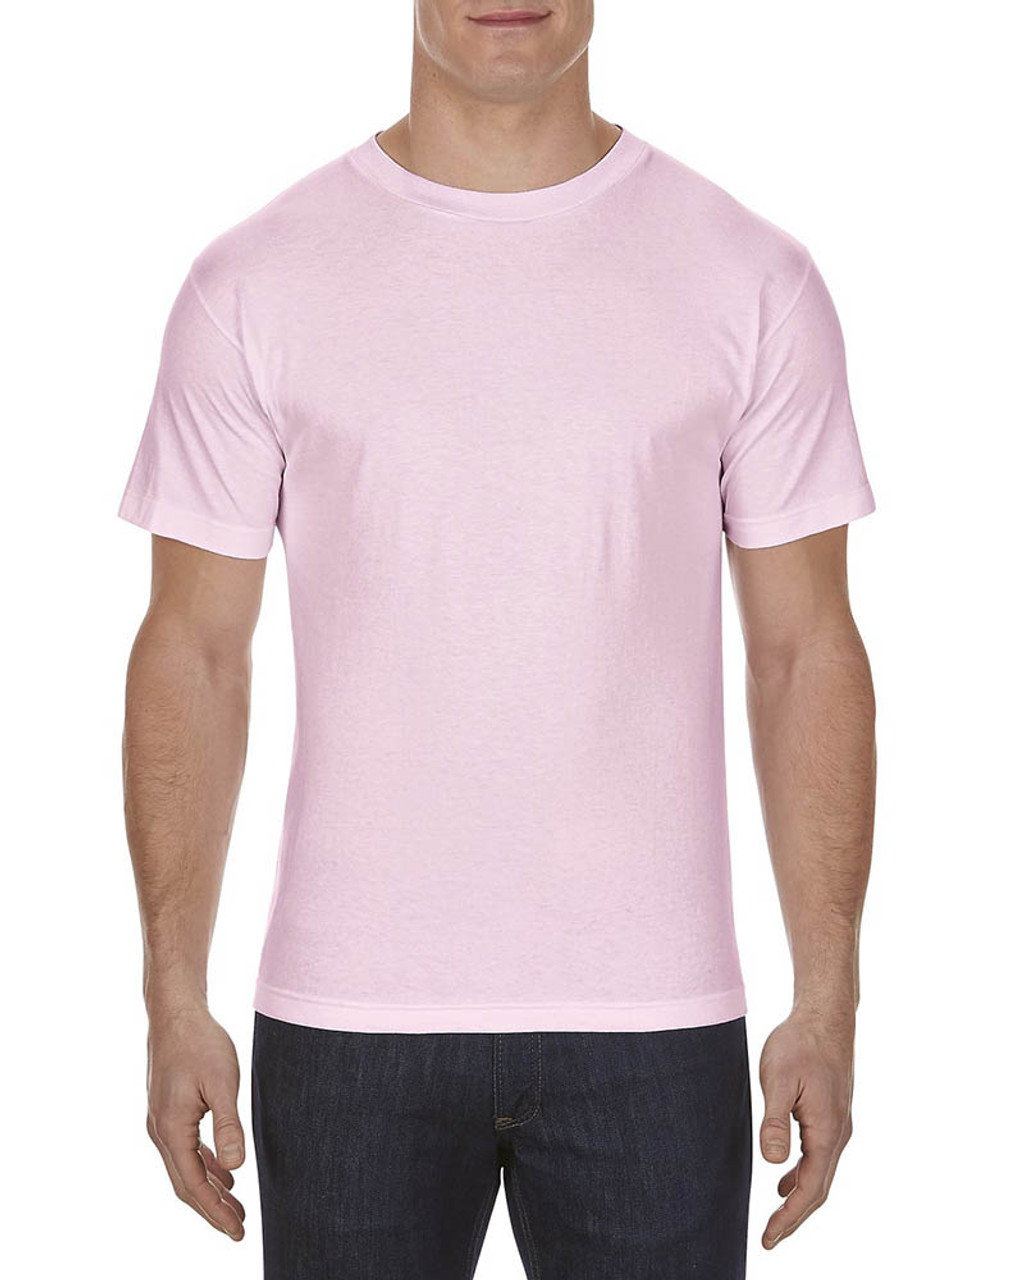 Pink - AL1301 Alstyle Adult 6.0 oz., 100% Cotton T-Shirt   BlankClothing.ca